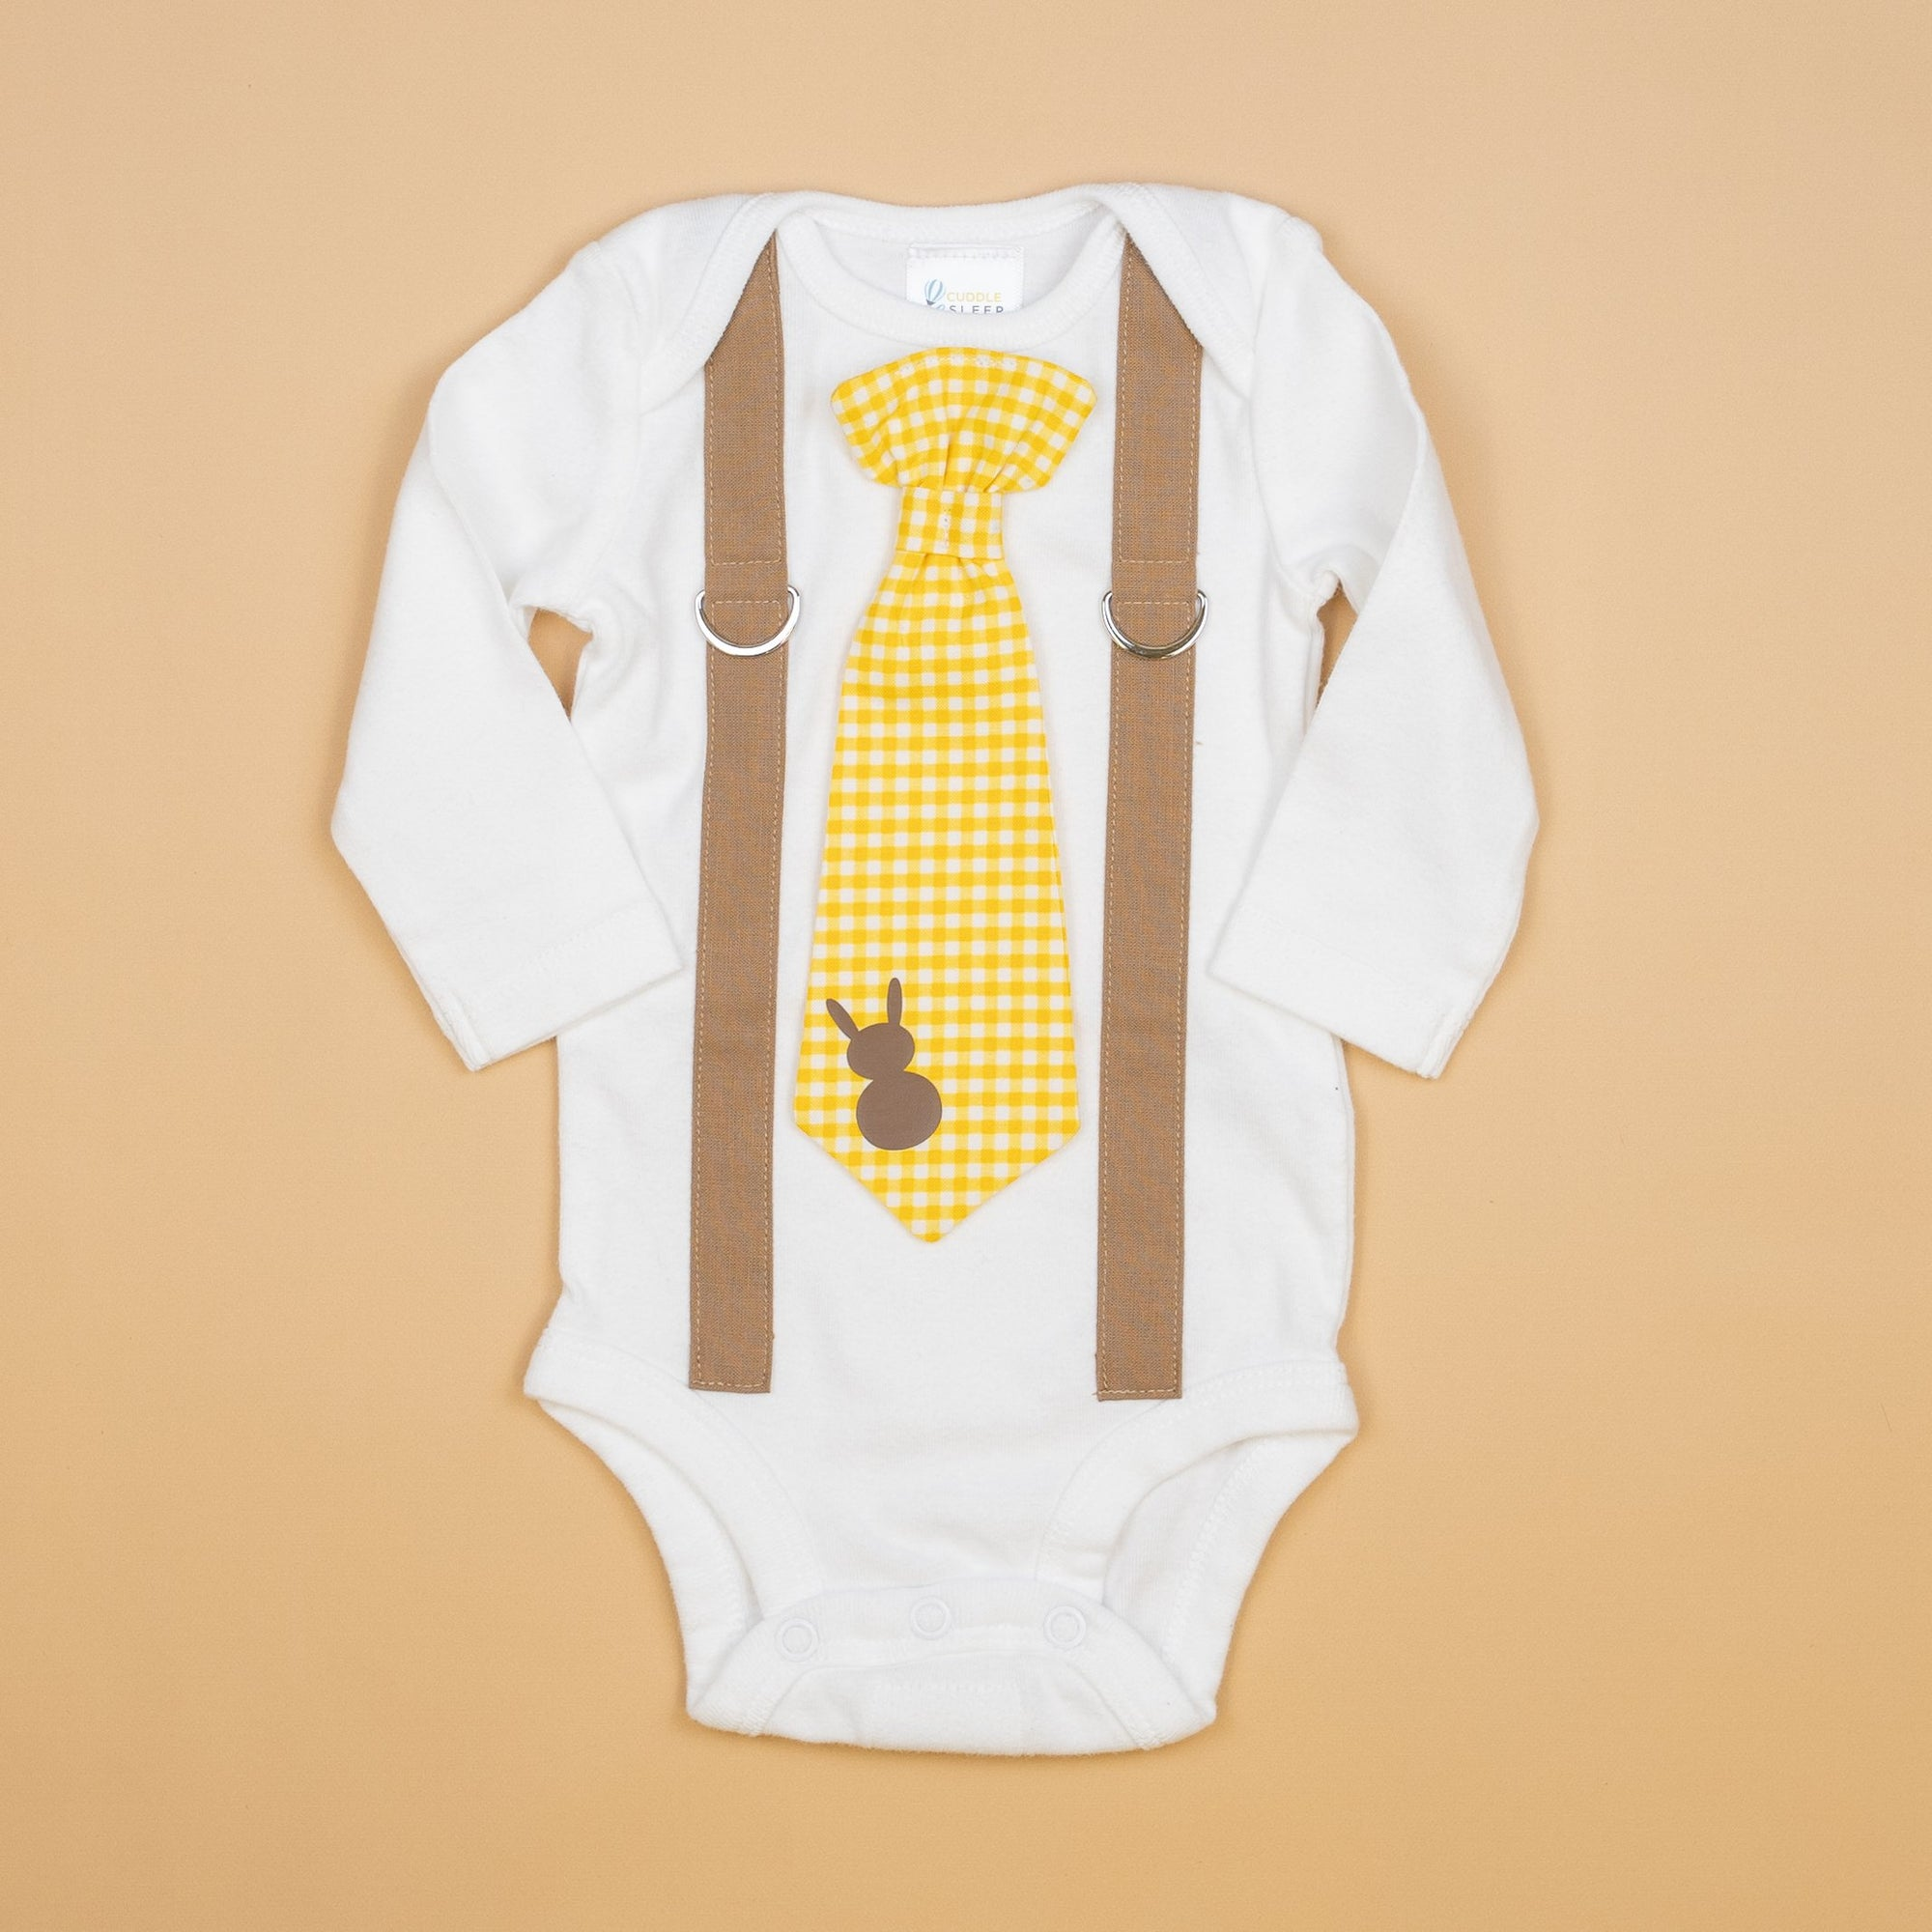 Cuddle Sleep Dream Oh Snap Mocha Suspenders | Yellow Gingham Bunny Tie